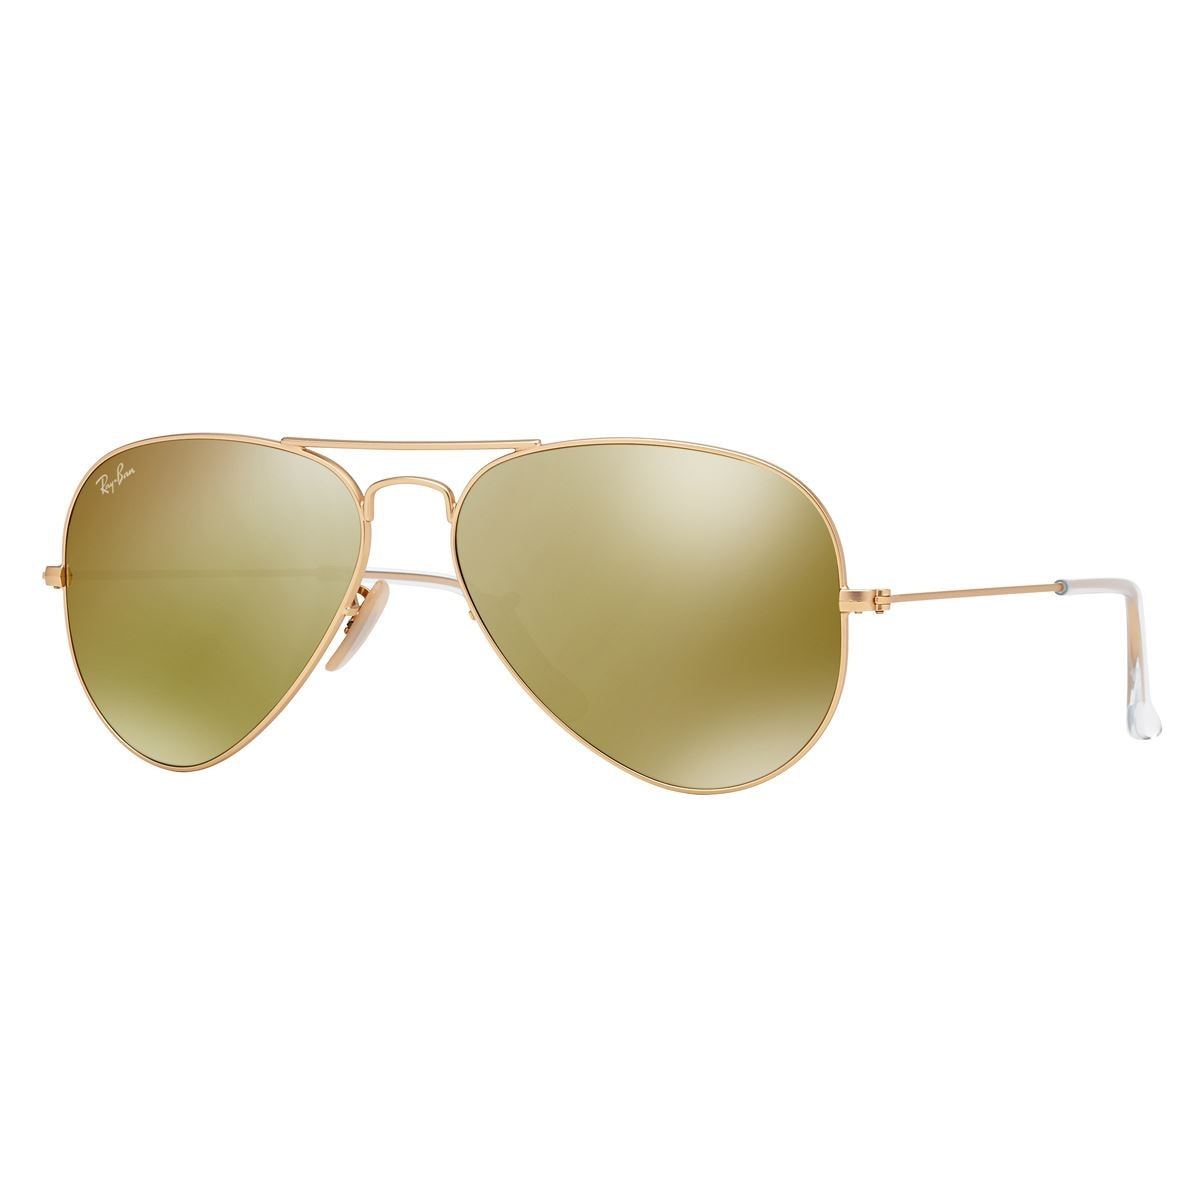 Solar Ray Ban 0rb3025 112/9358 H